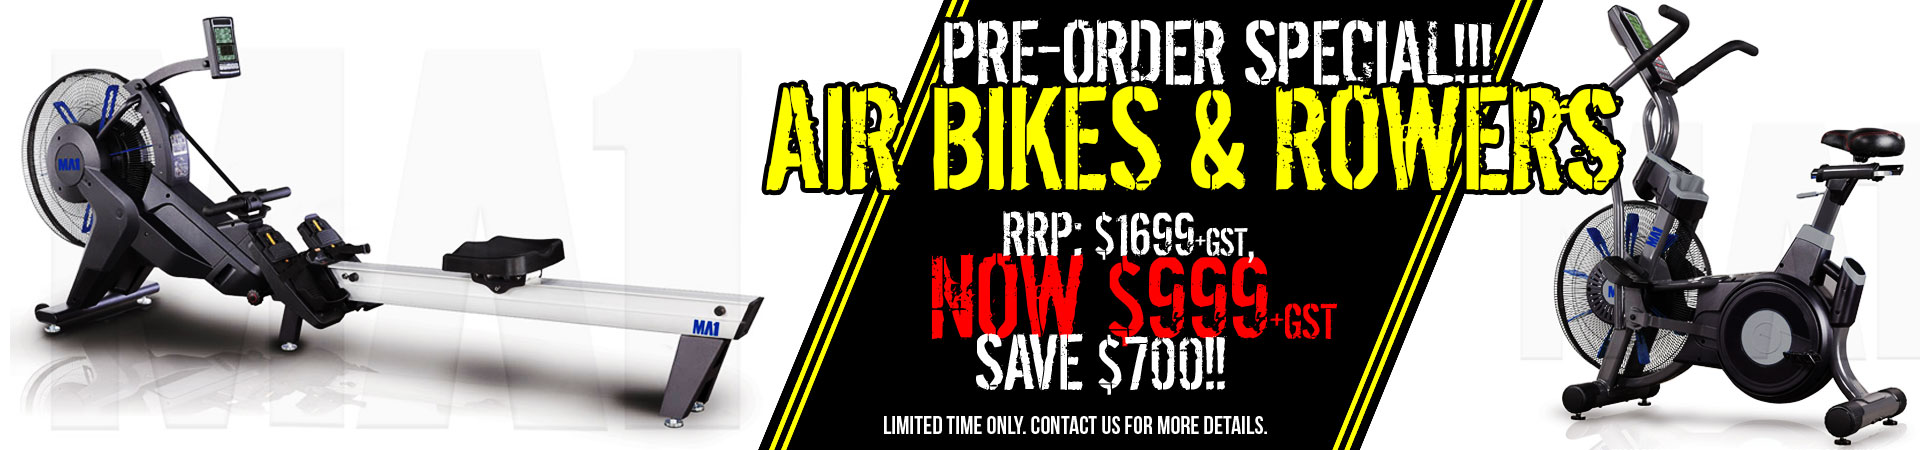 Air Bikes & Rowers. Pre-Order Special!